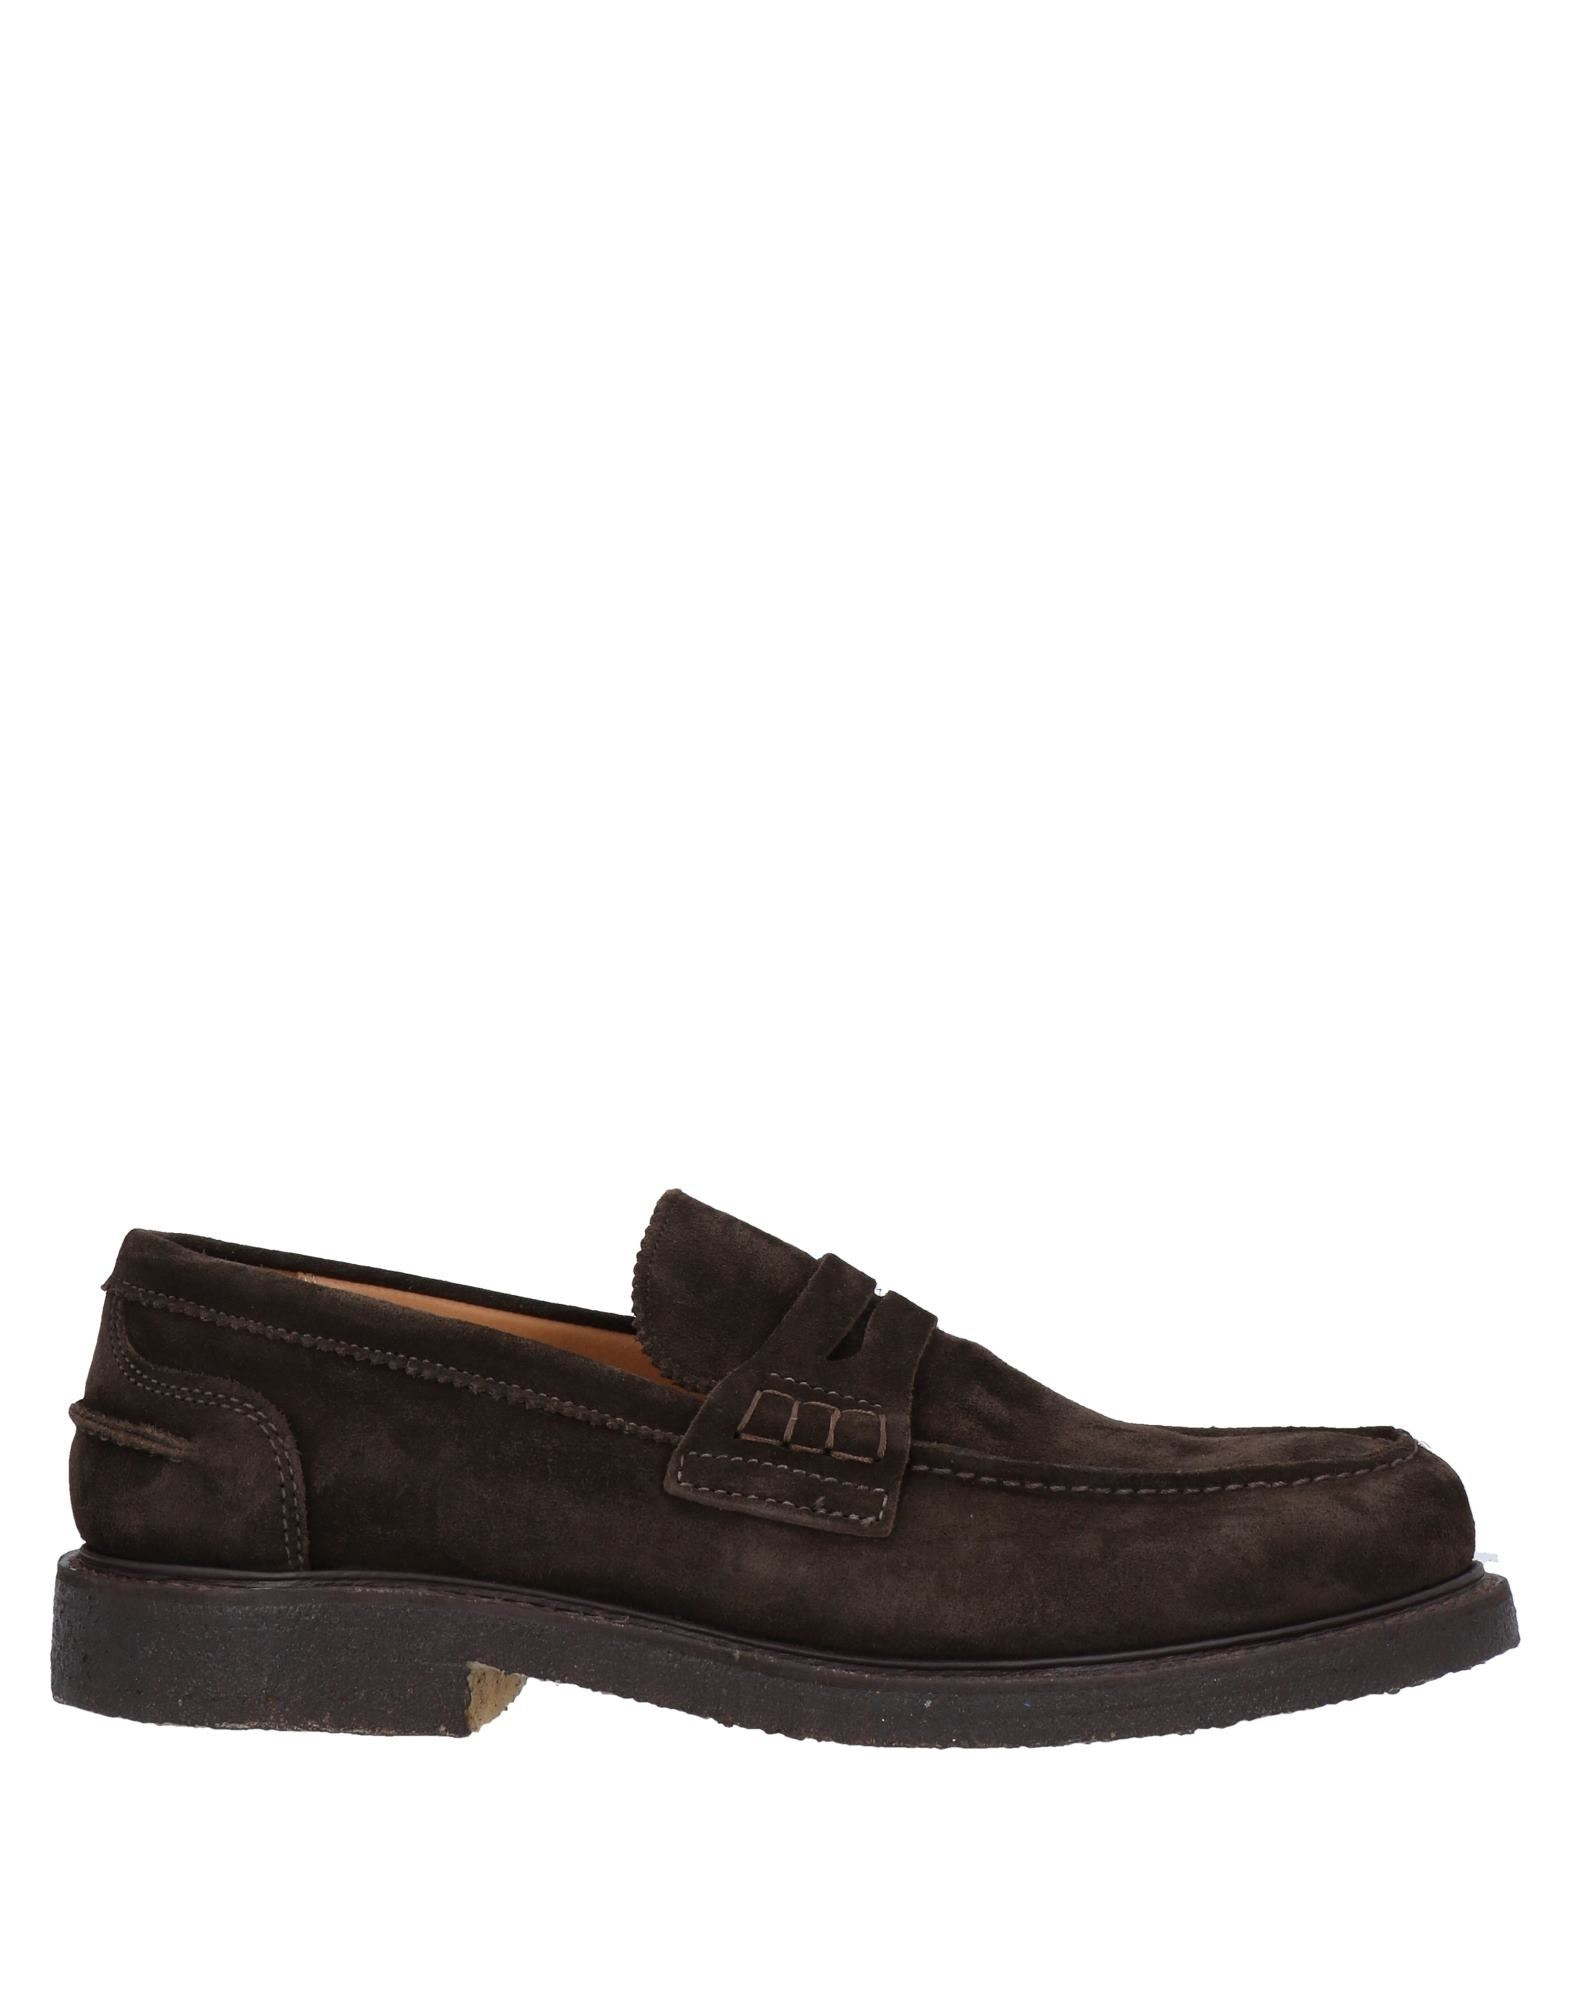 JOSEPH CHEANEY & SONS Loafers - Item 17053266